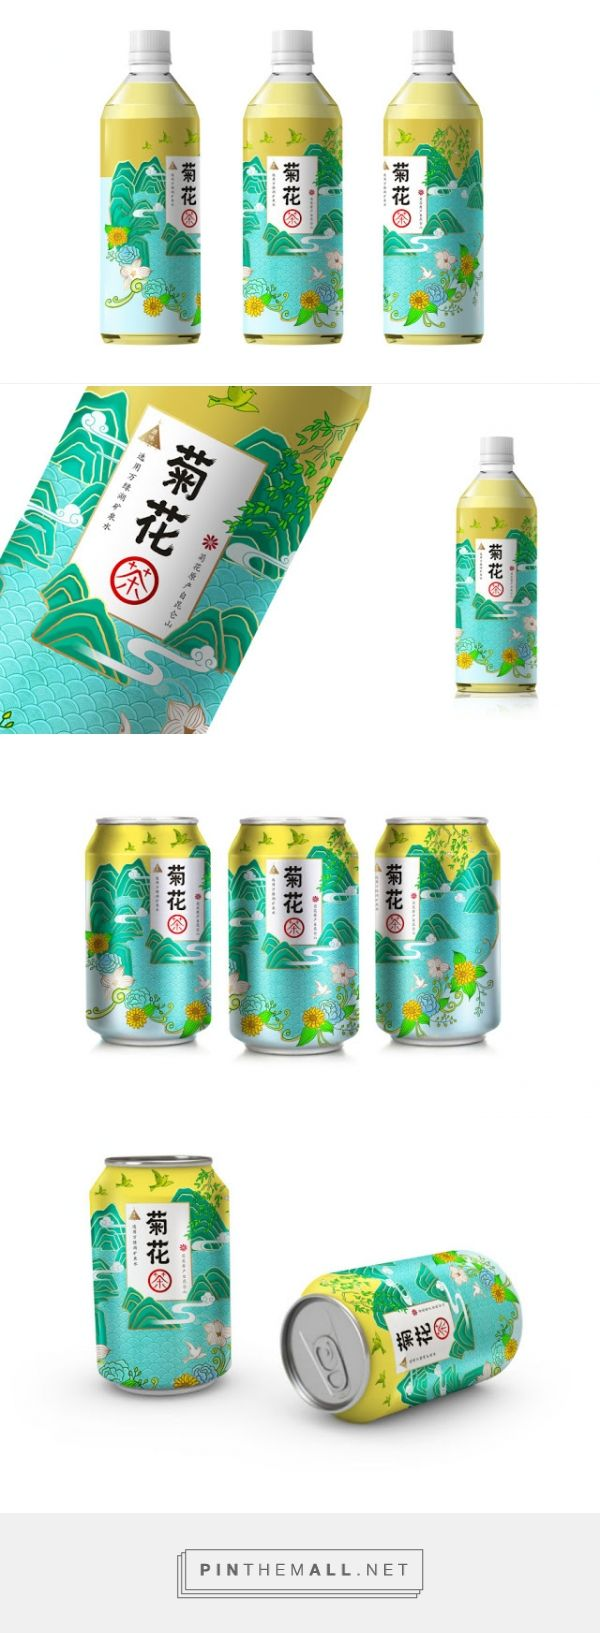 The Origin Chrysanthemum Tea by mmoowww. Pin curated by #SFields99 #packaging #design